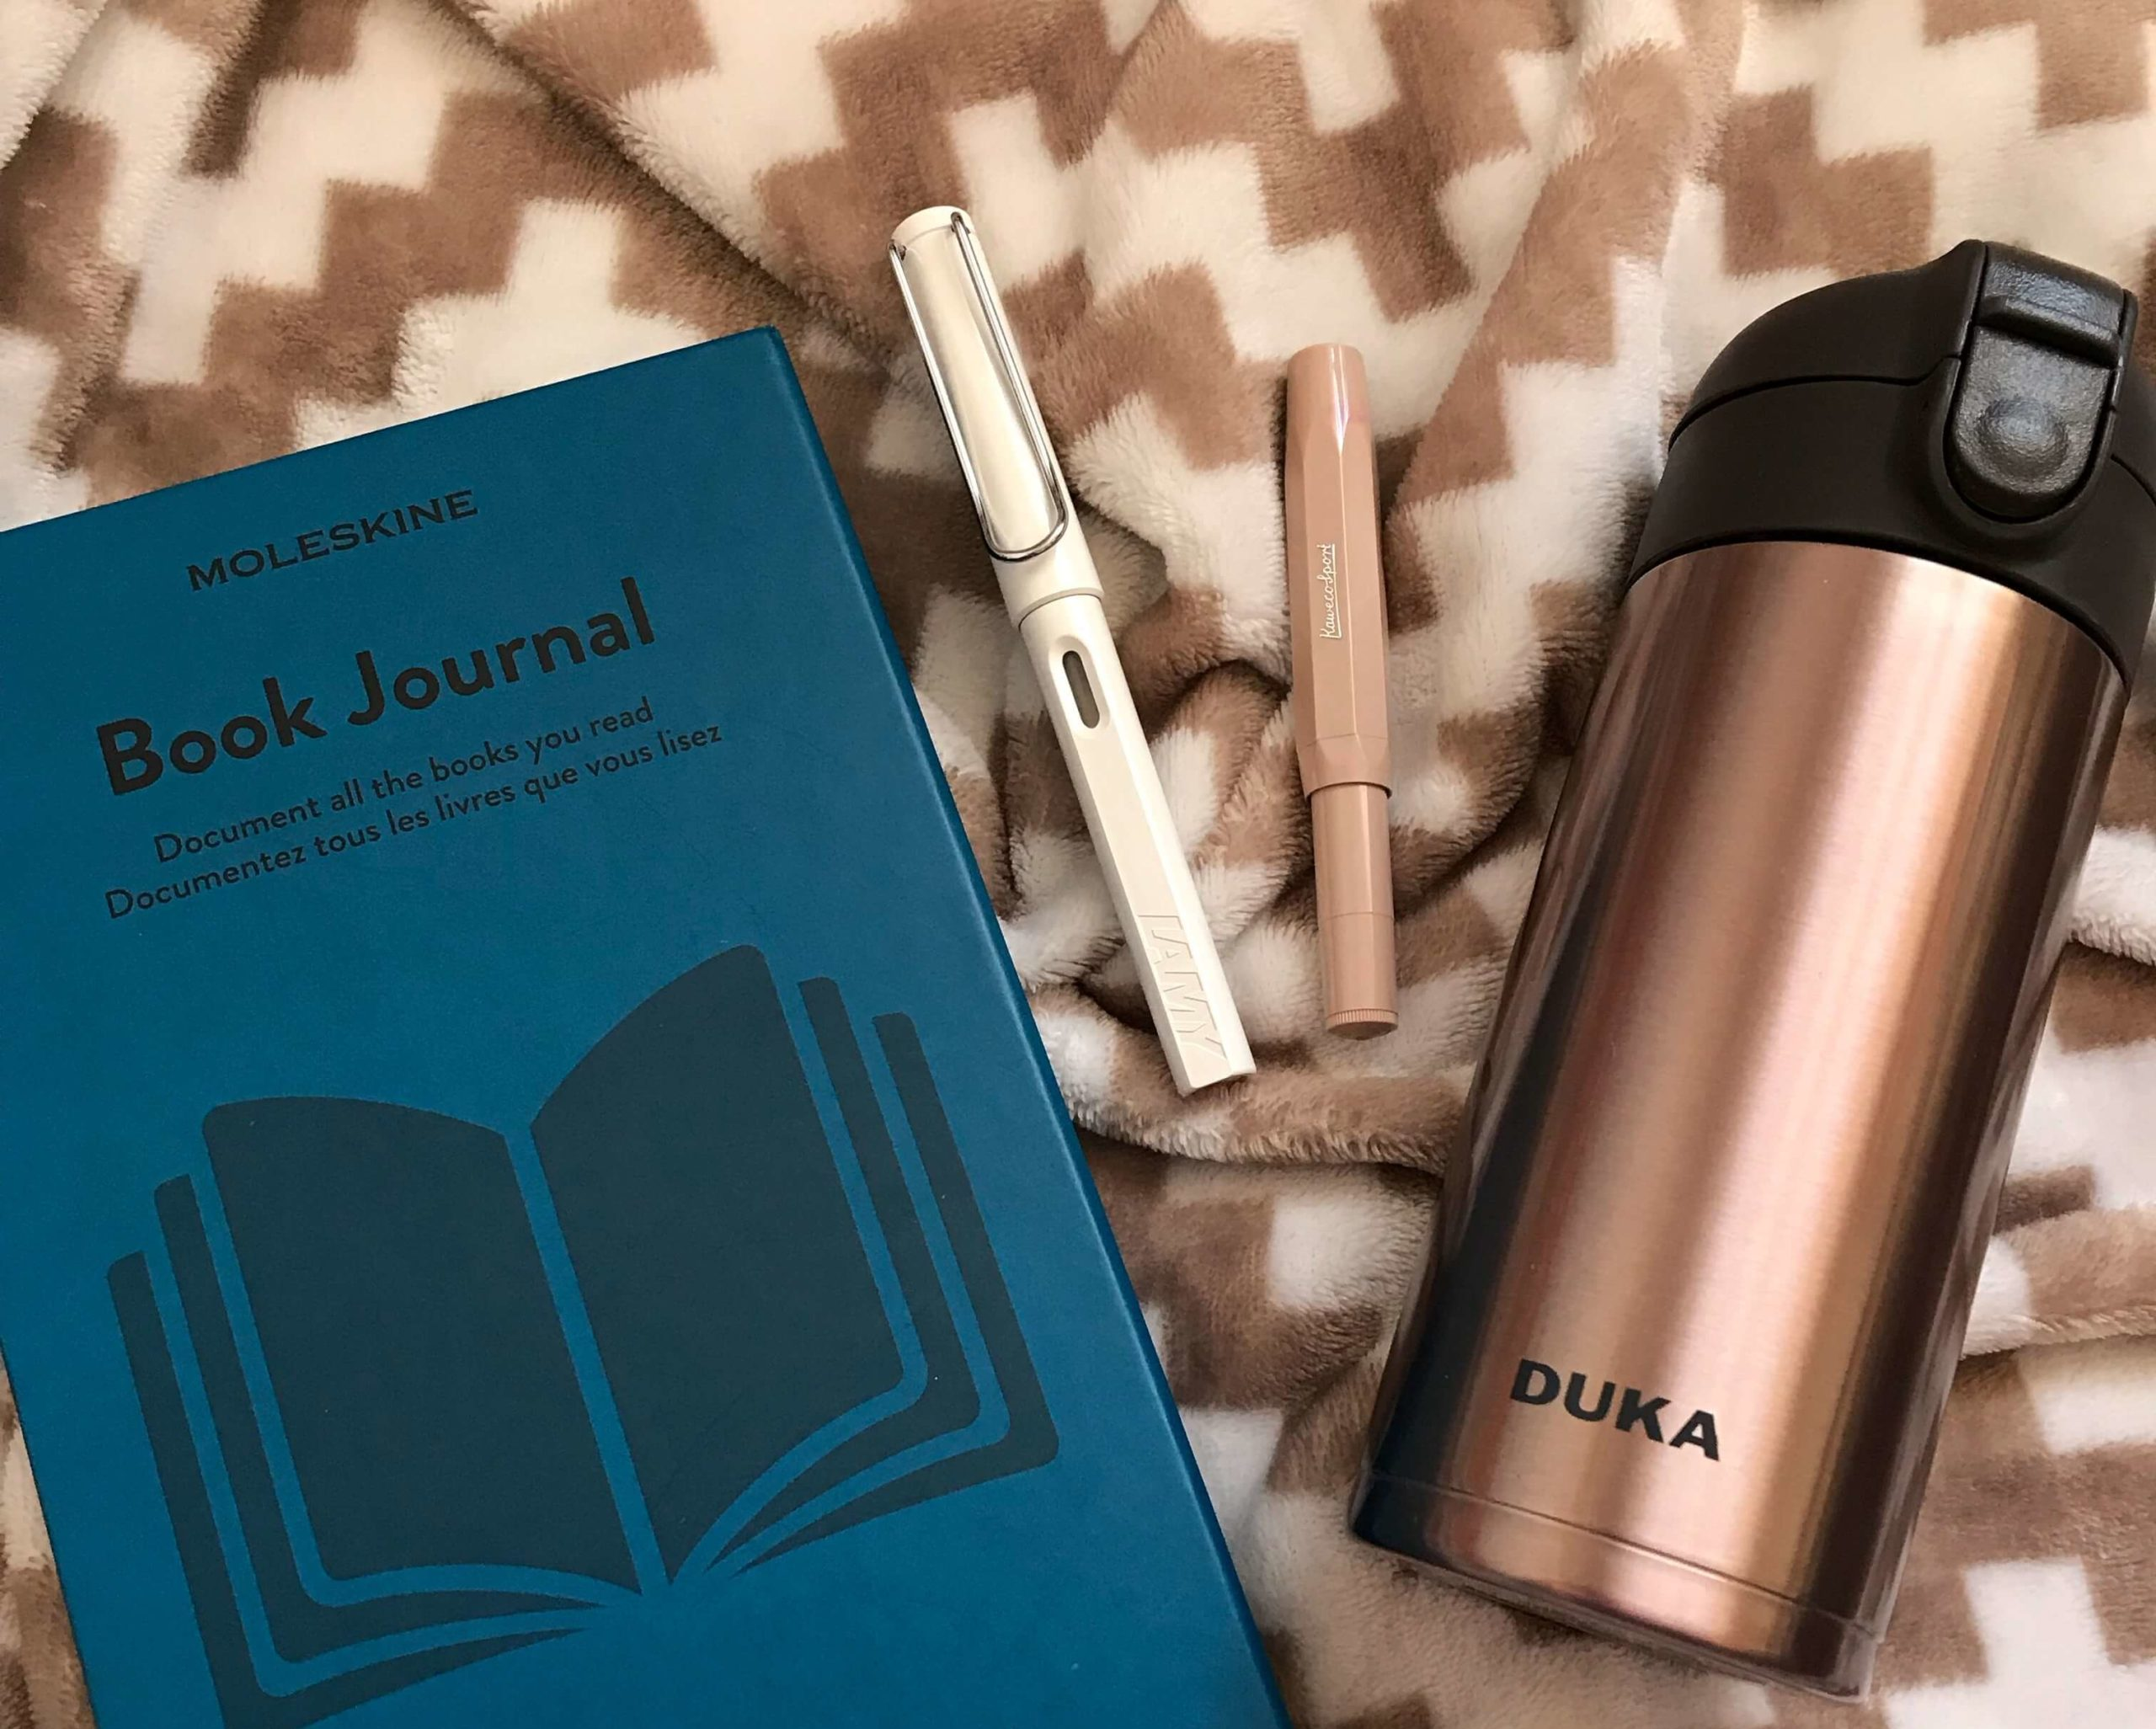 book journal moleskine duka vacuum kubek